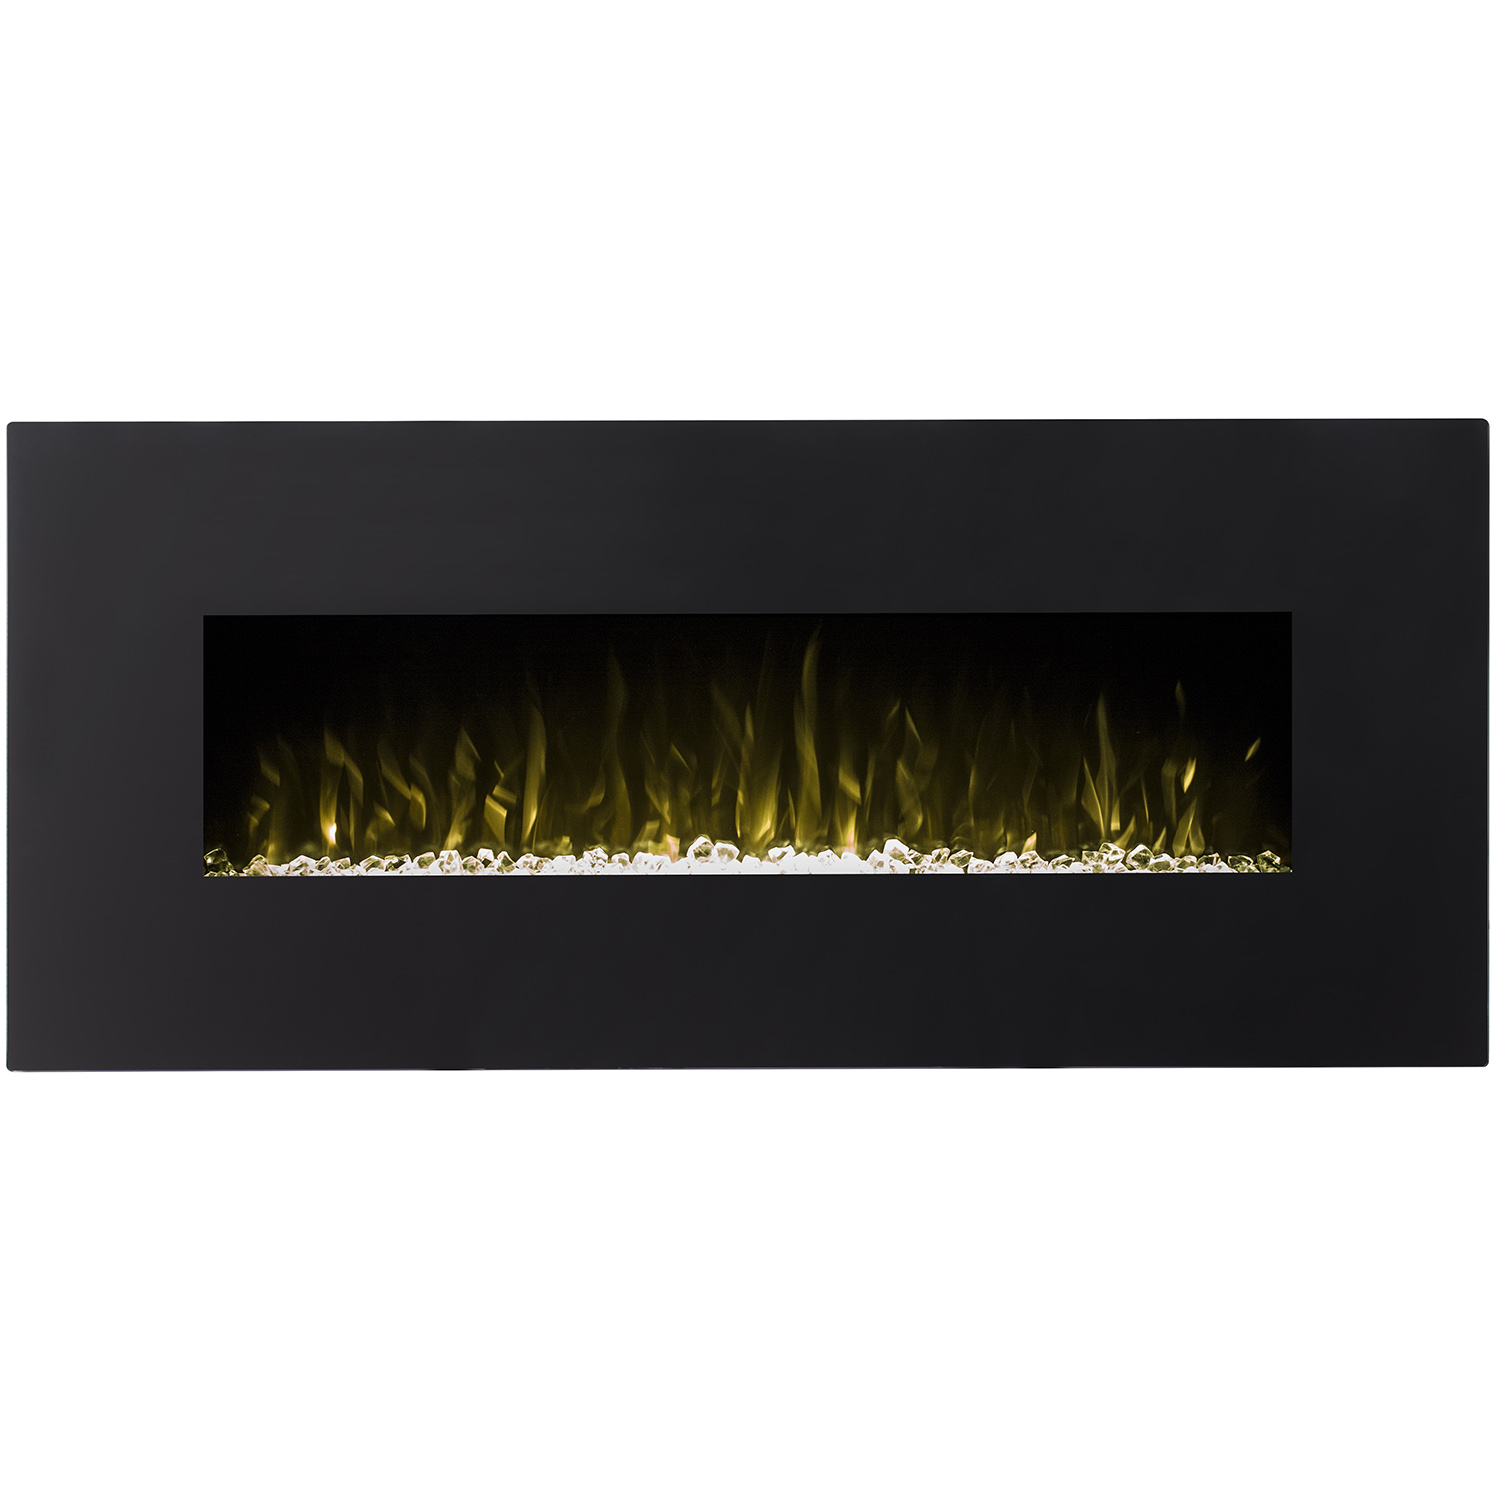 Details About Ryan Rove Orion 50 Black Ventless Heater Electric Wall Mounted Fireplace Crystal